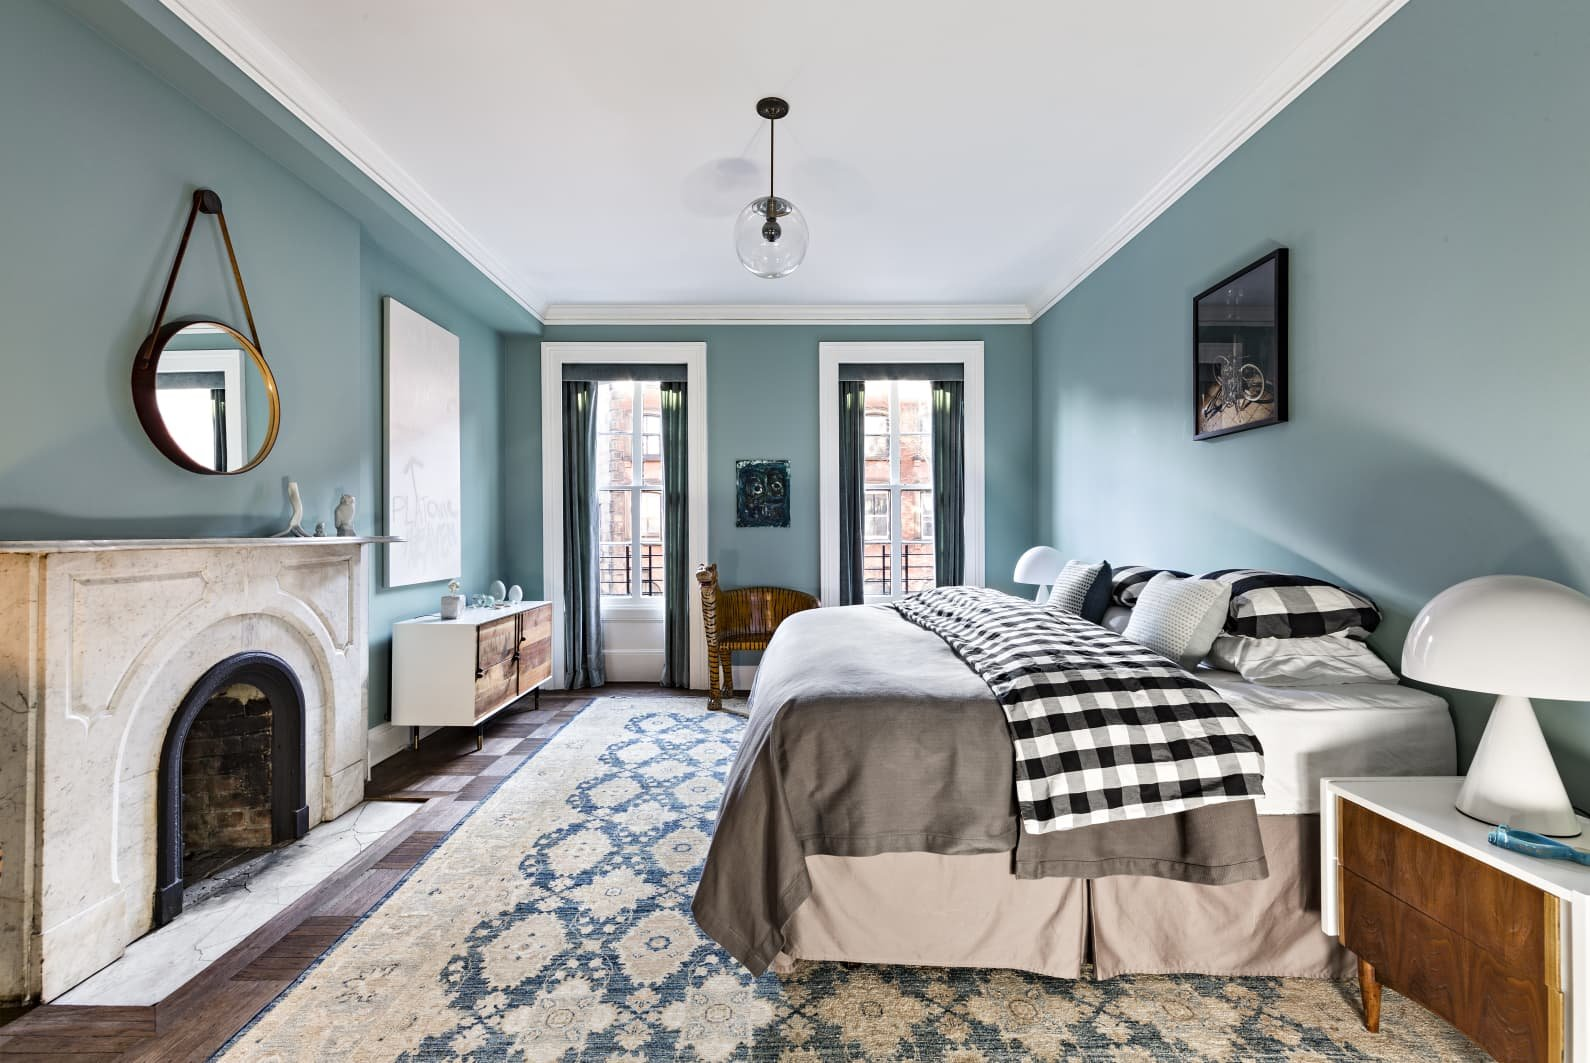 Apartamento Mary Kate Oslen en Manhattan dormitorio con pared azul